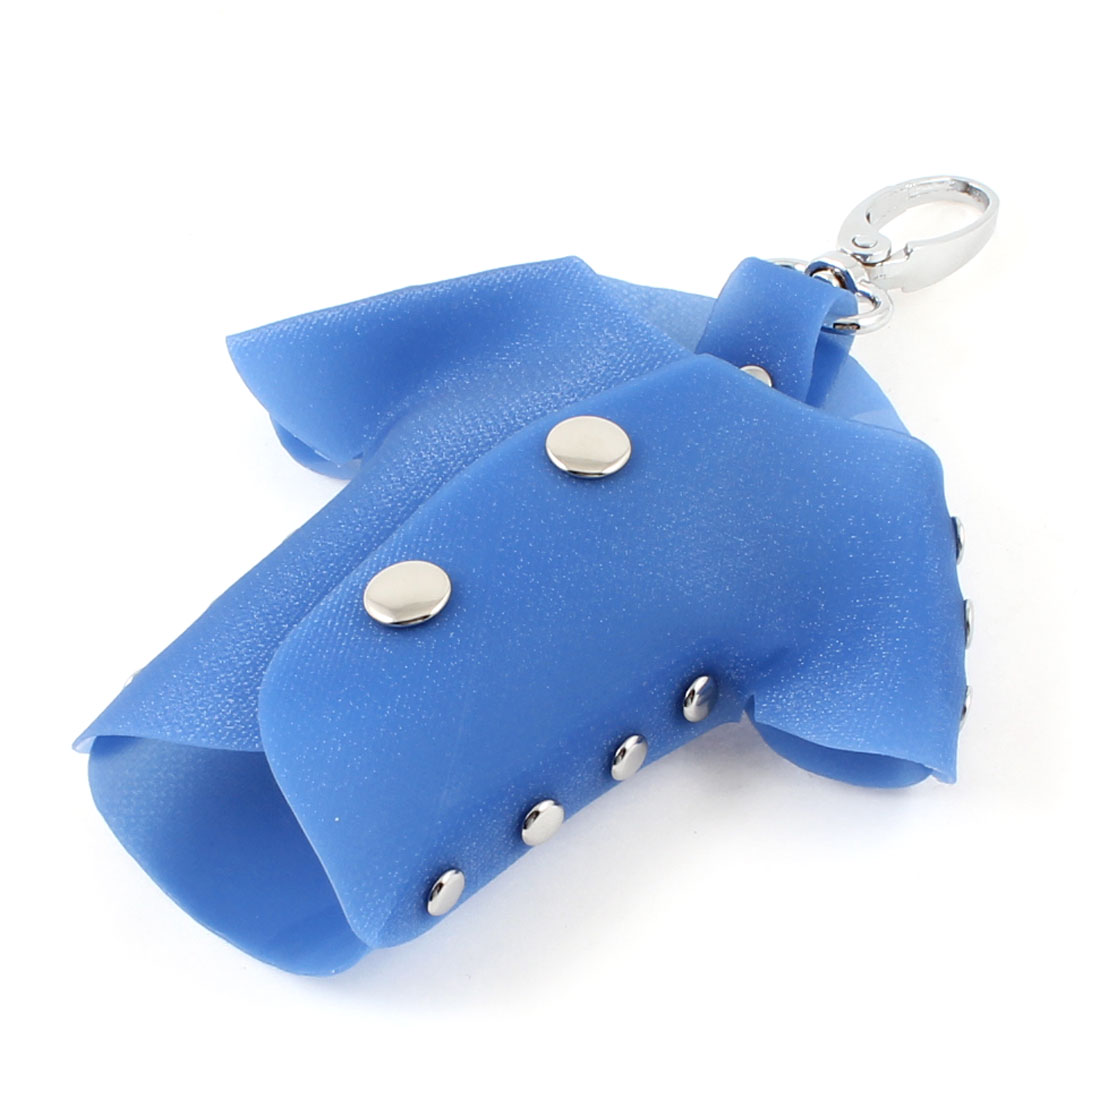 Blue Plastic T Shirt Shaped Lobster Clasp Keys Holder Pouch